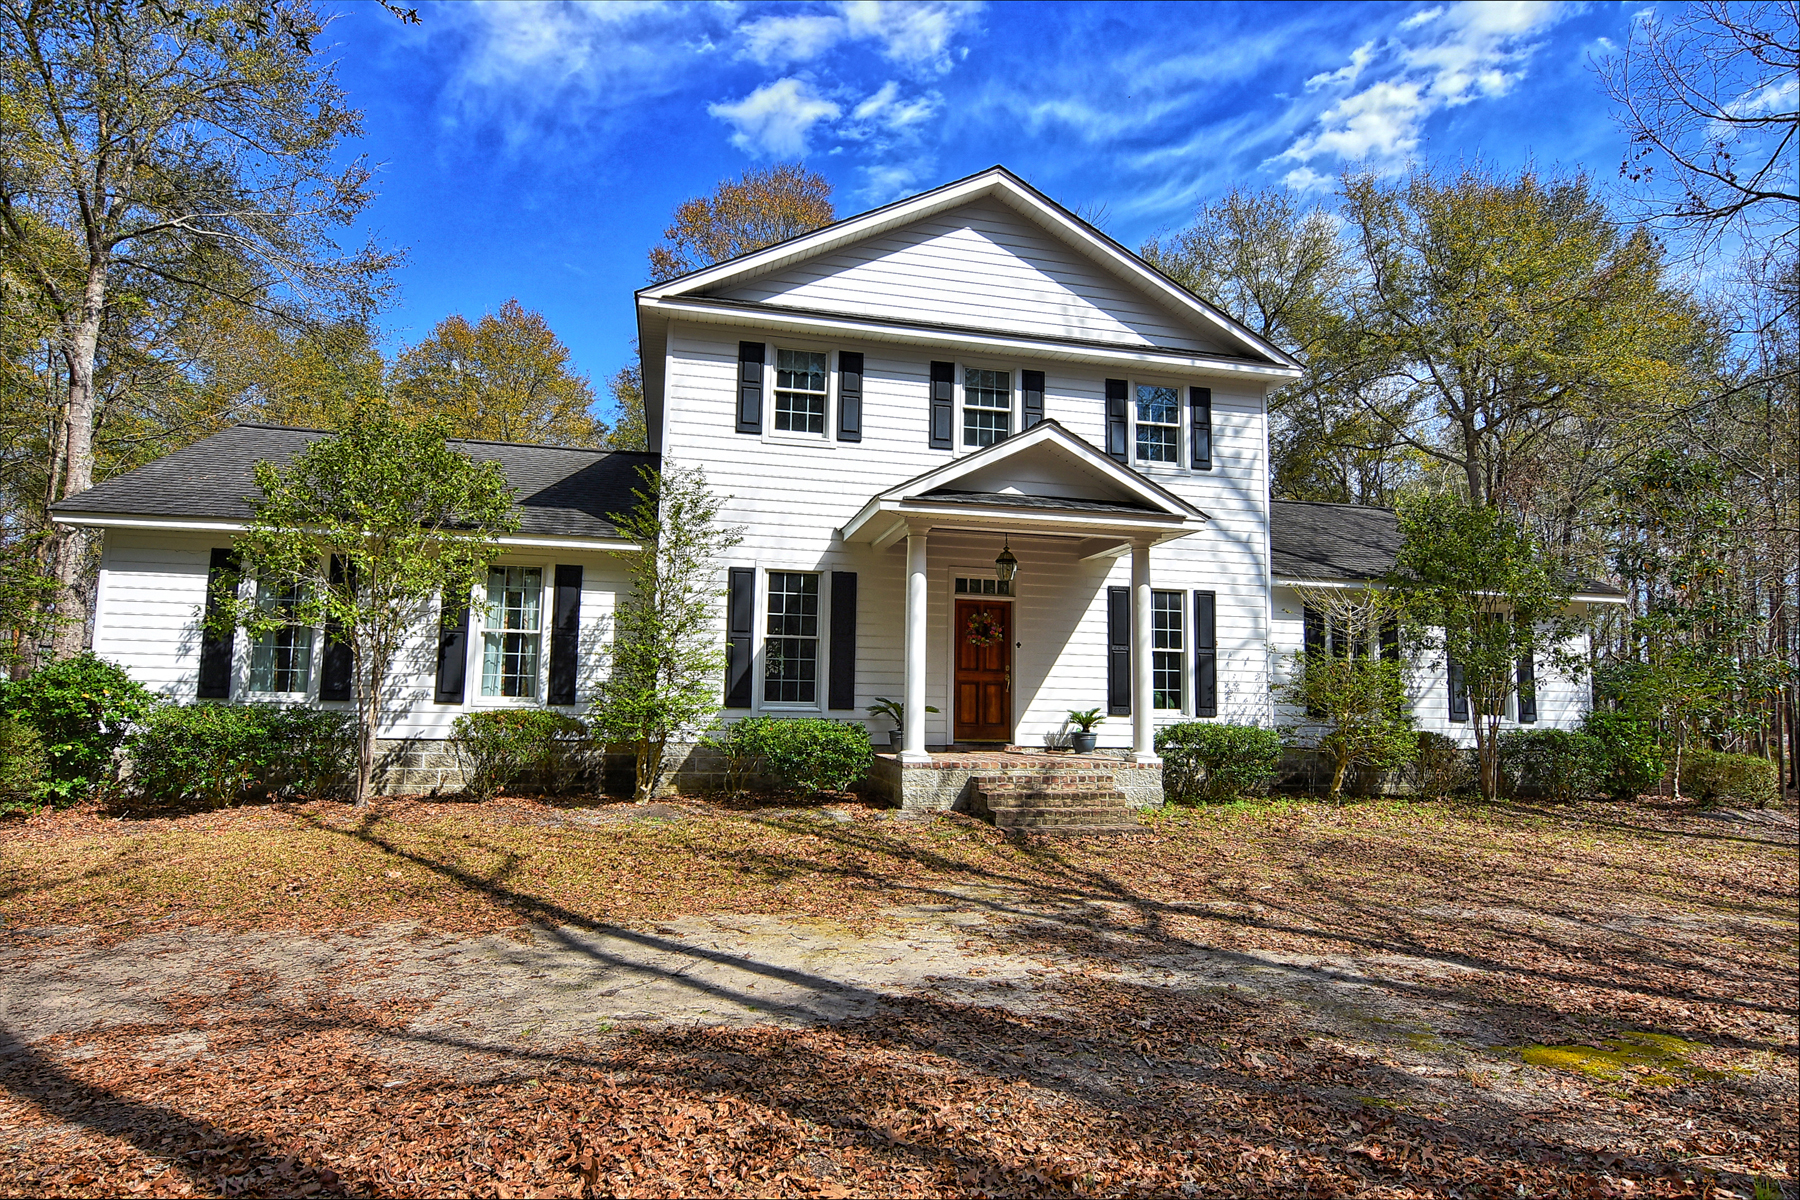 Single Family Home for Sale at 3293 Center Road, Georgetown, SC 29440 3293 Center Road Georgetown, South Carolina 29440 United States